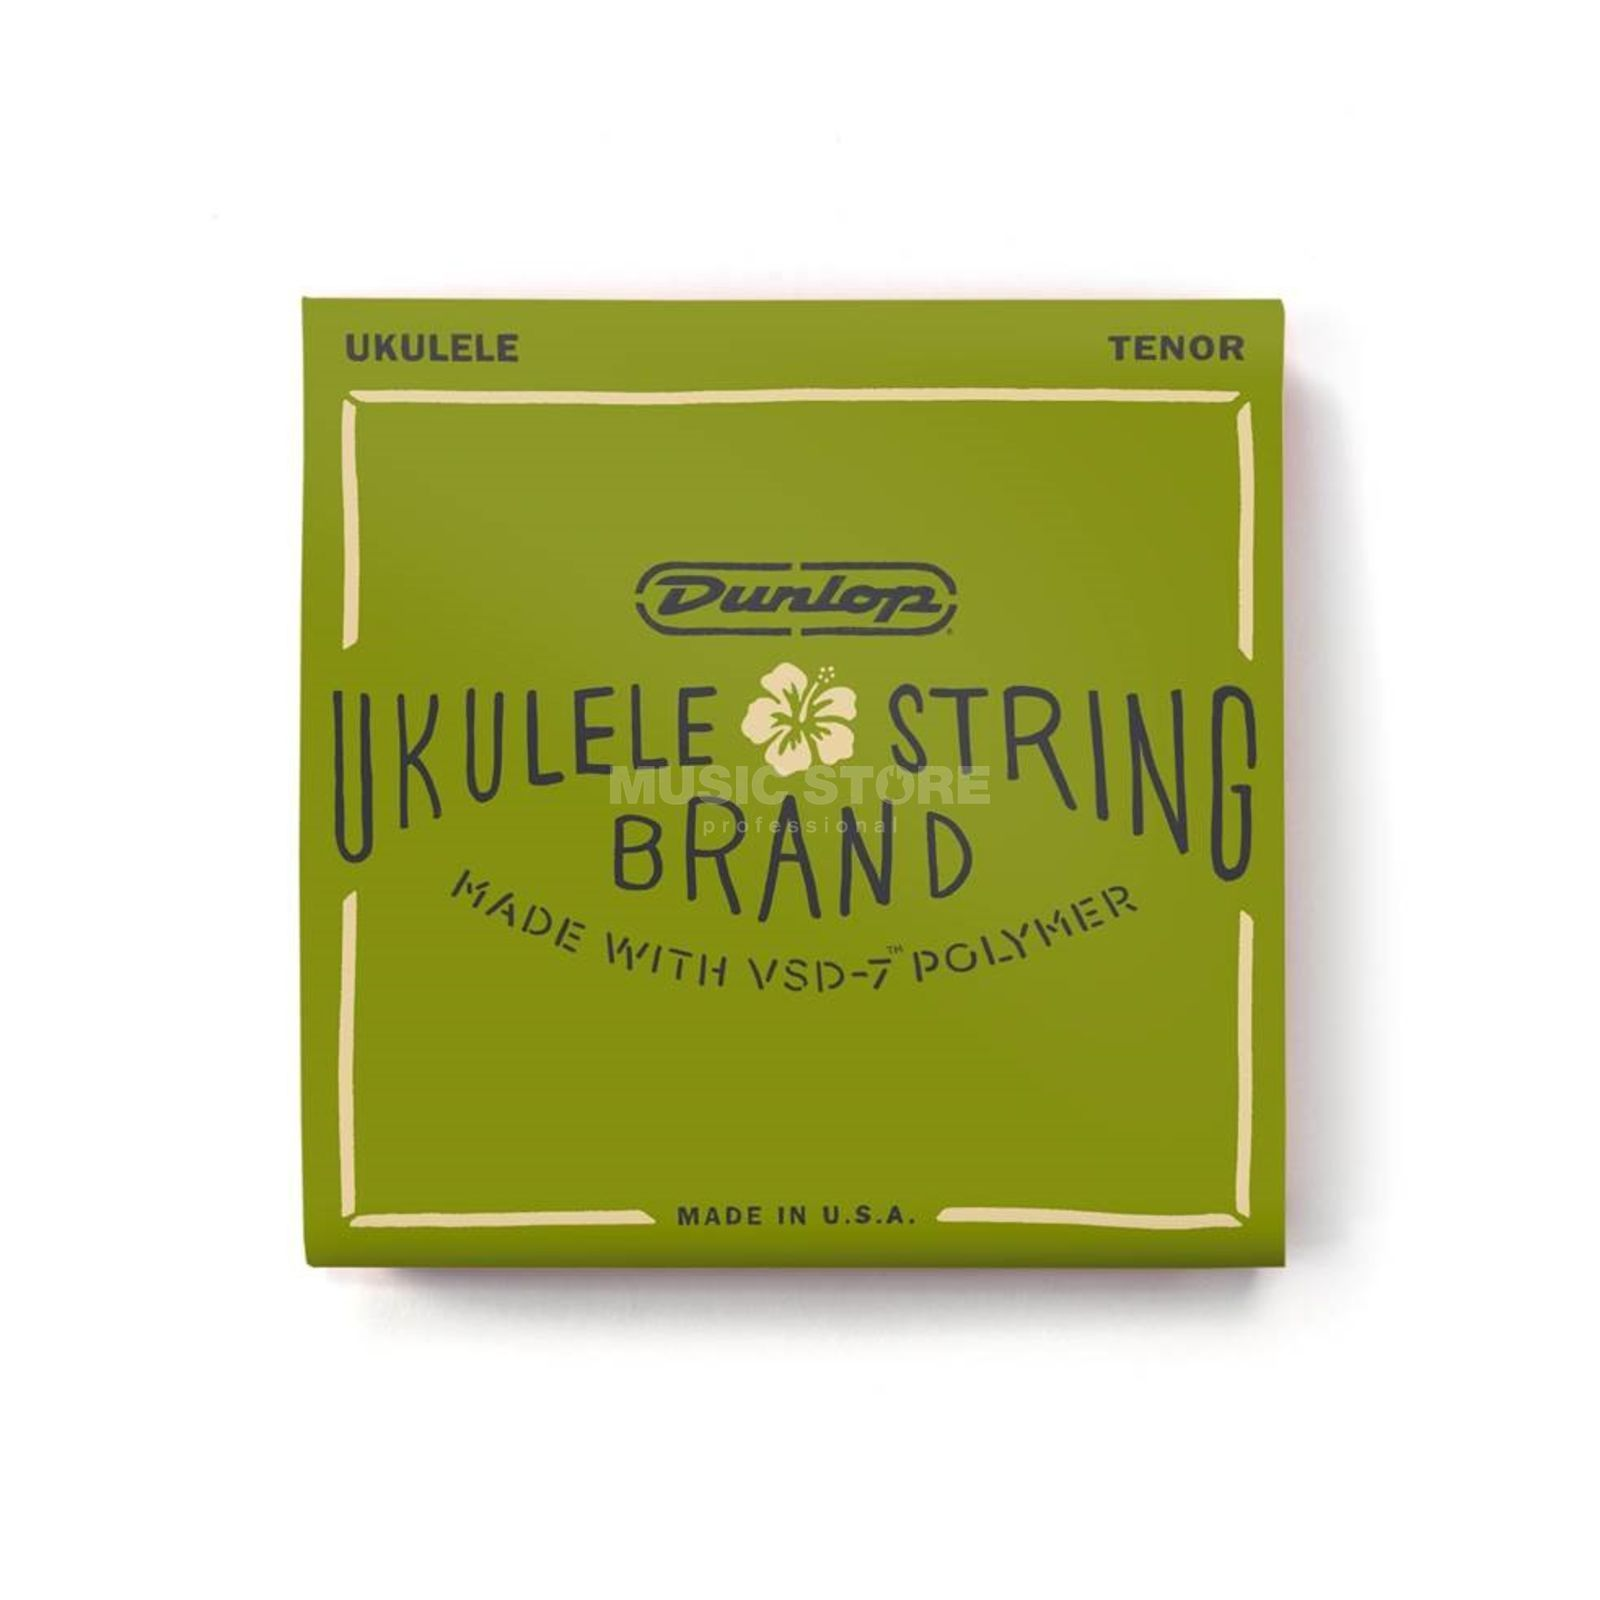 Dunlop Ukulele Strings 303 Tenor Pro 4-string Изображение товара